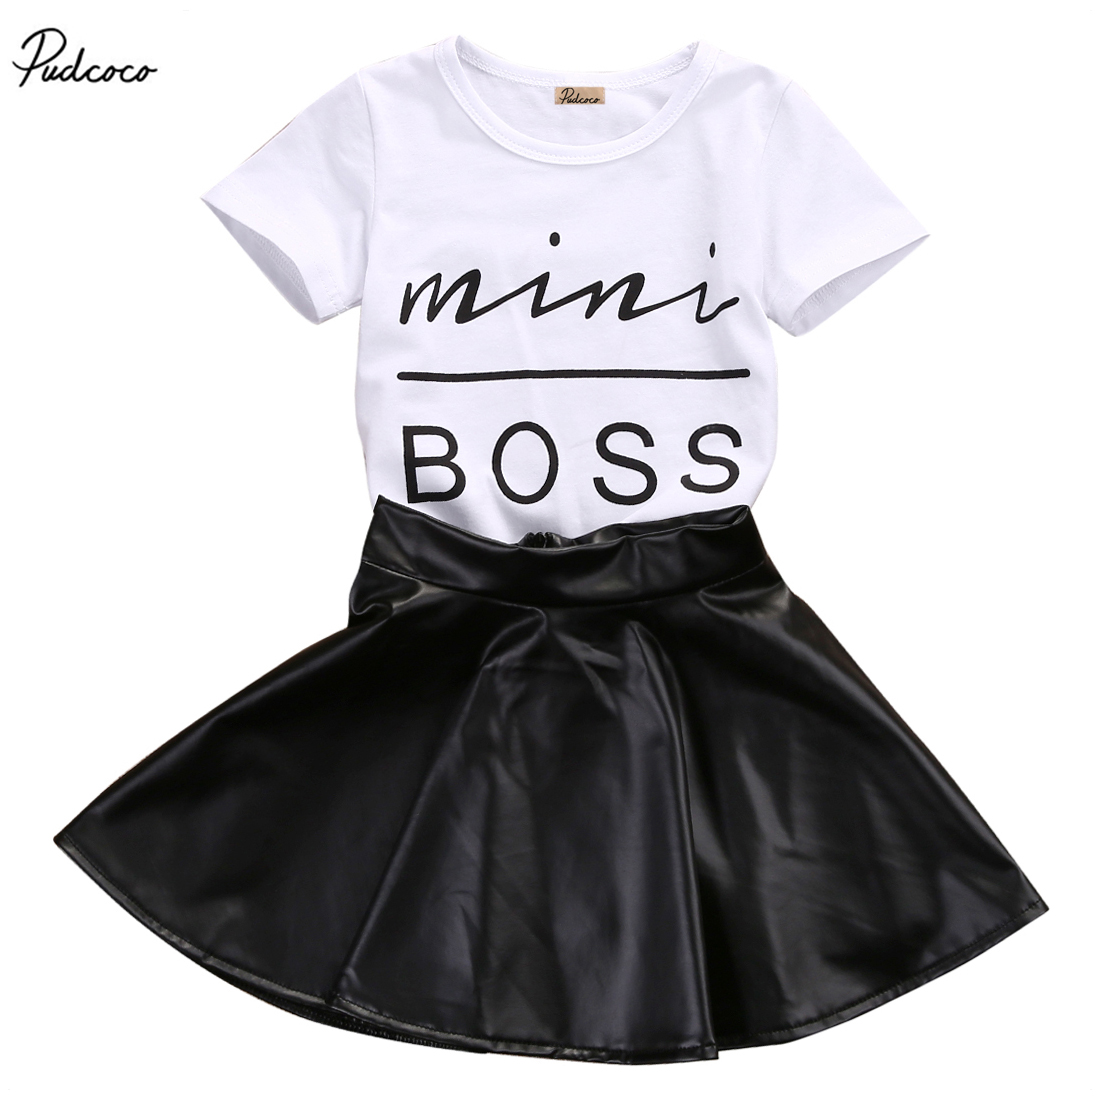 2 Pz Cute Baby Ragazza Bambini Mini Boss Lettera Manica Corta T-shirt Top Faux Leather Mini Gonne Outfit Set 1-6y Prezzo Moderato